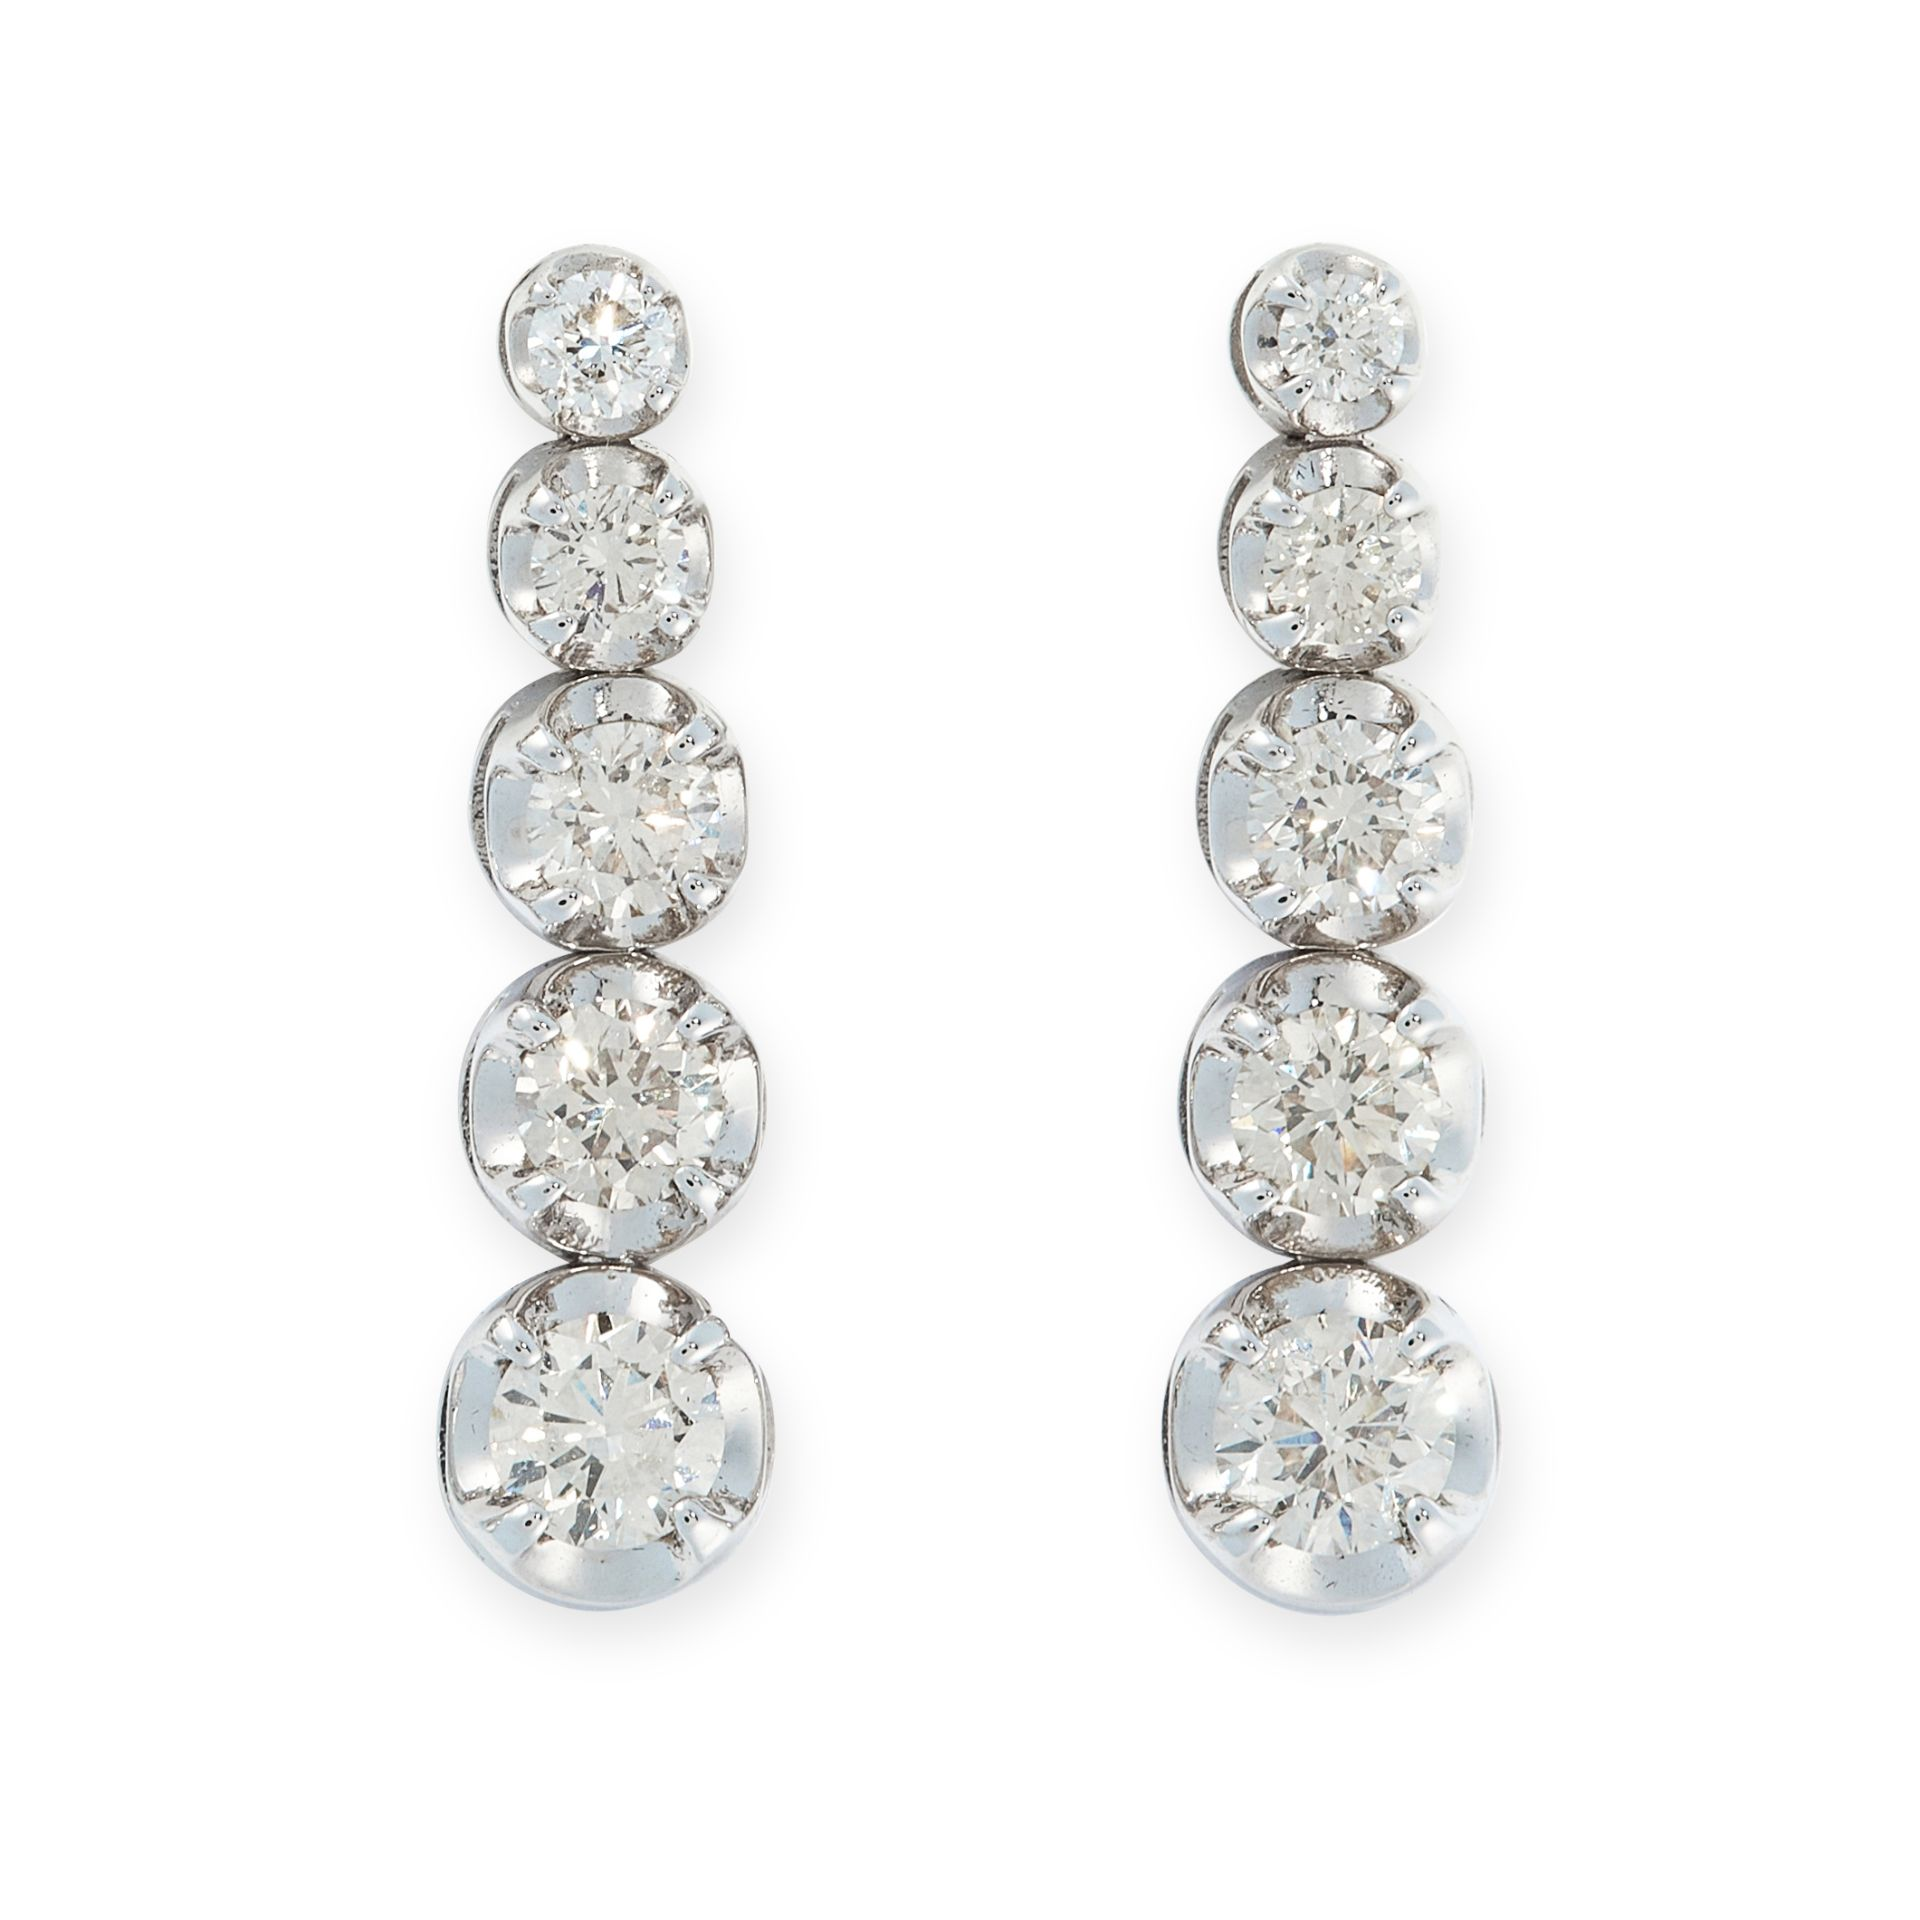 A PAIR OF DIAMOND DROP EARRINGS in 18ct white gold, each designed as a row of five graduated round